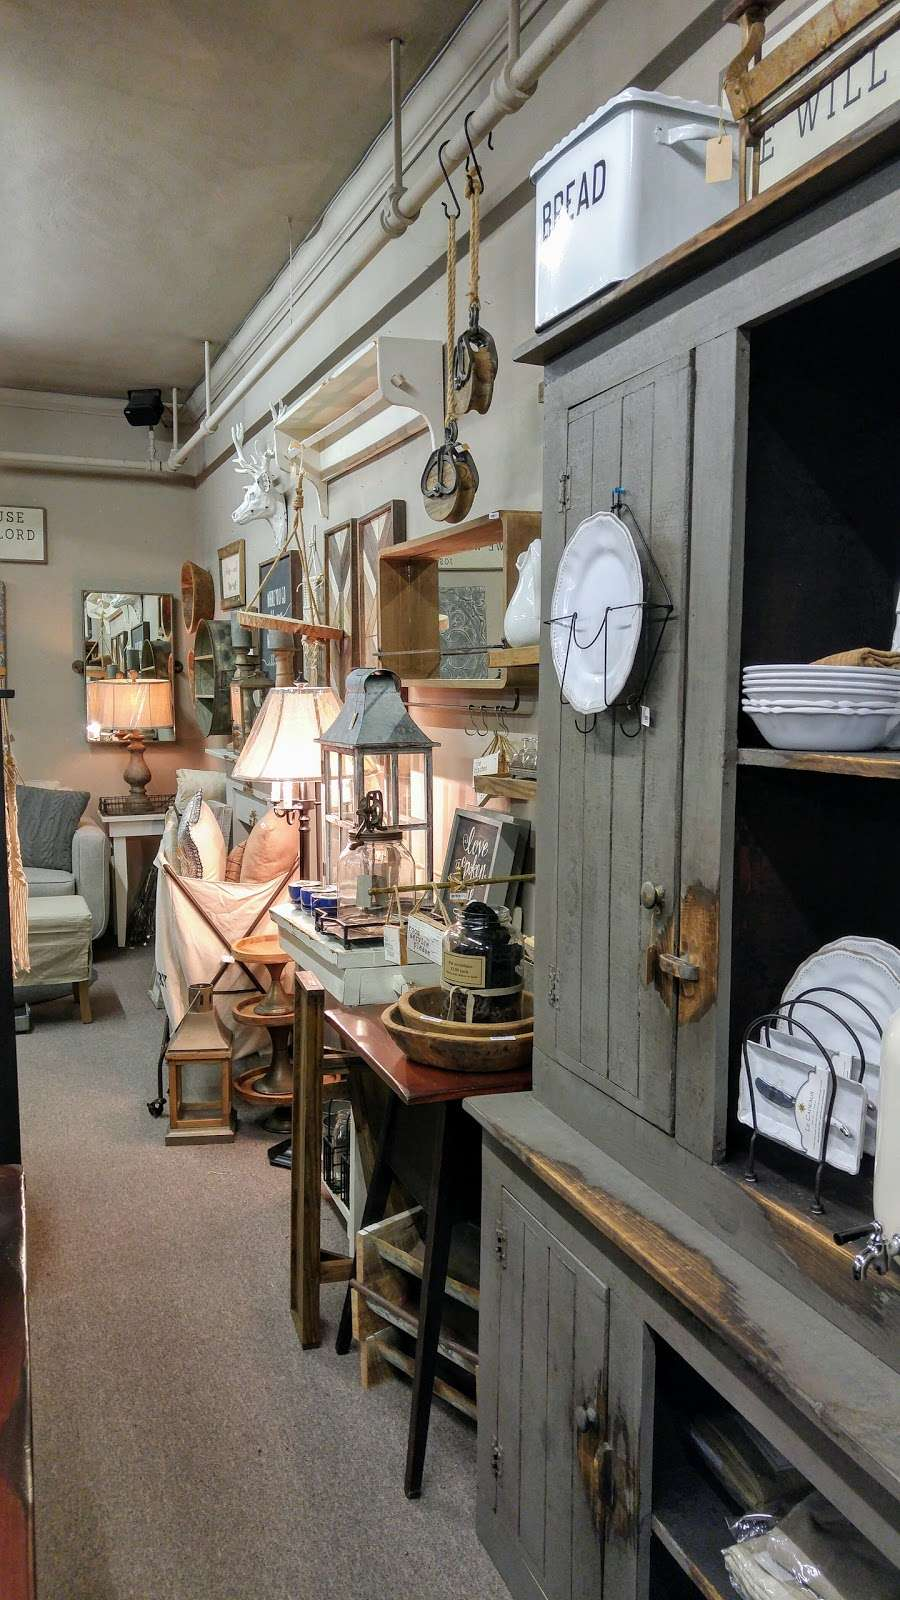 Cocalico Creek Country Store - home goods store  | Photo 8 of 10 | Address: 1037 N Reading Rd, Stevens, PA 17578, USA | Phone: (717) 336-5522